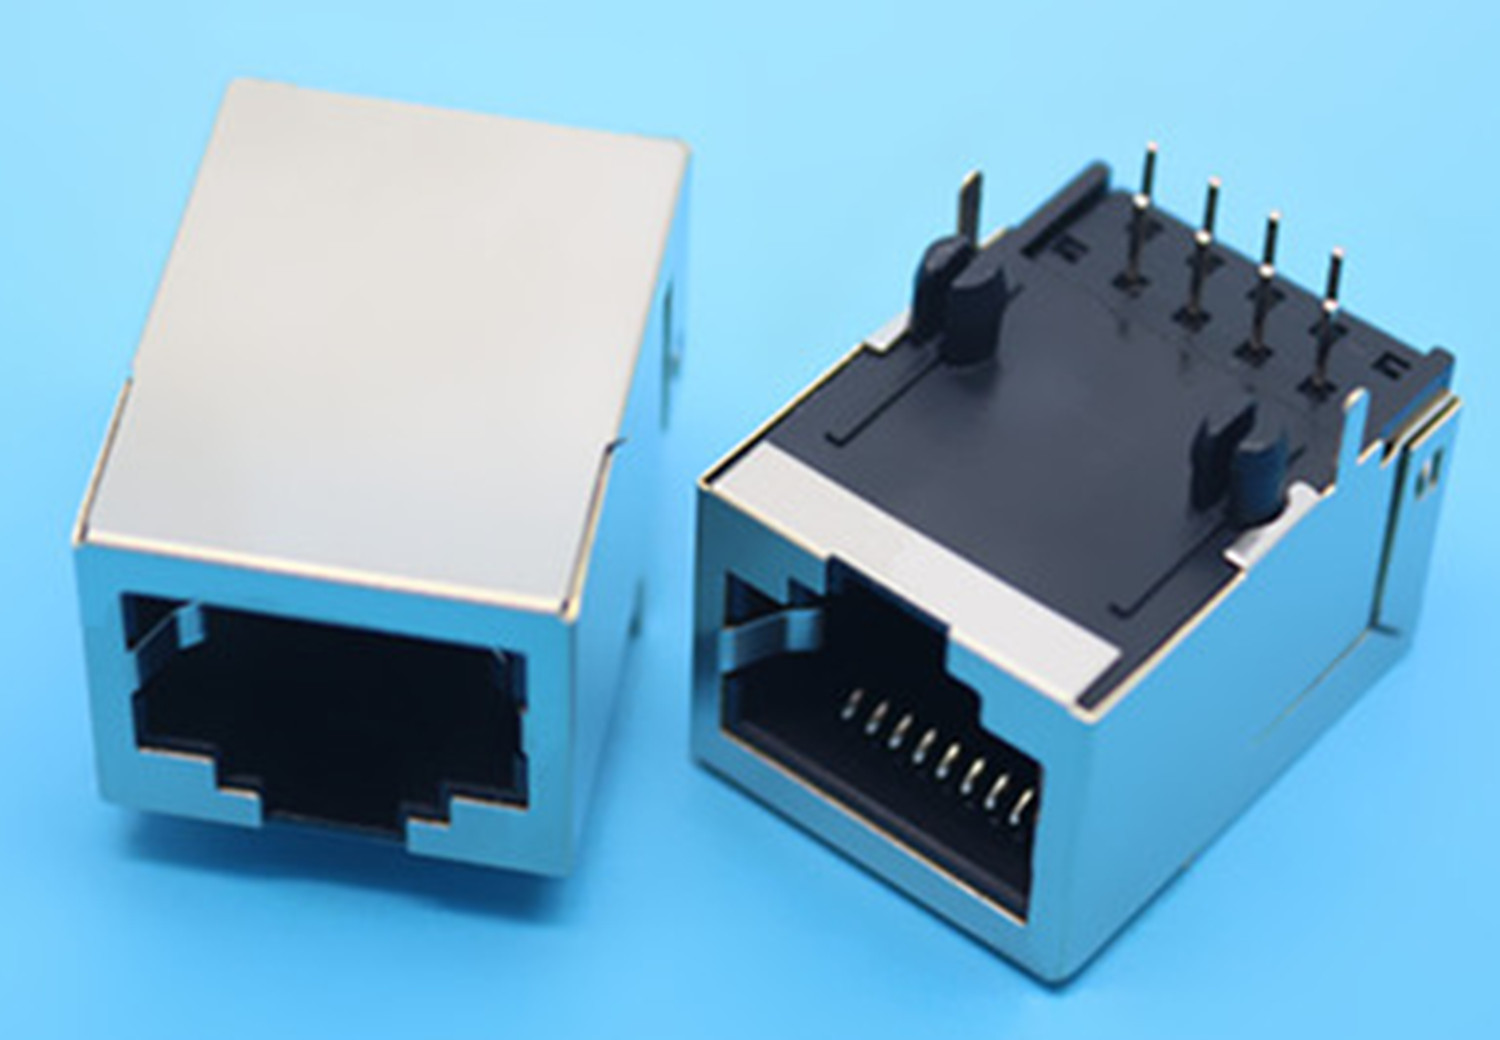 2PCS RJ45 Socket 90-Degree Right Angle PCB Shielded Network Connector Long Body Rear 2pcs 90 degree up